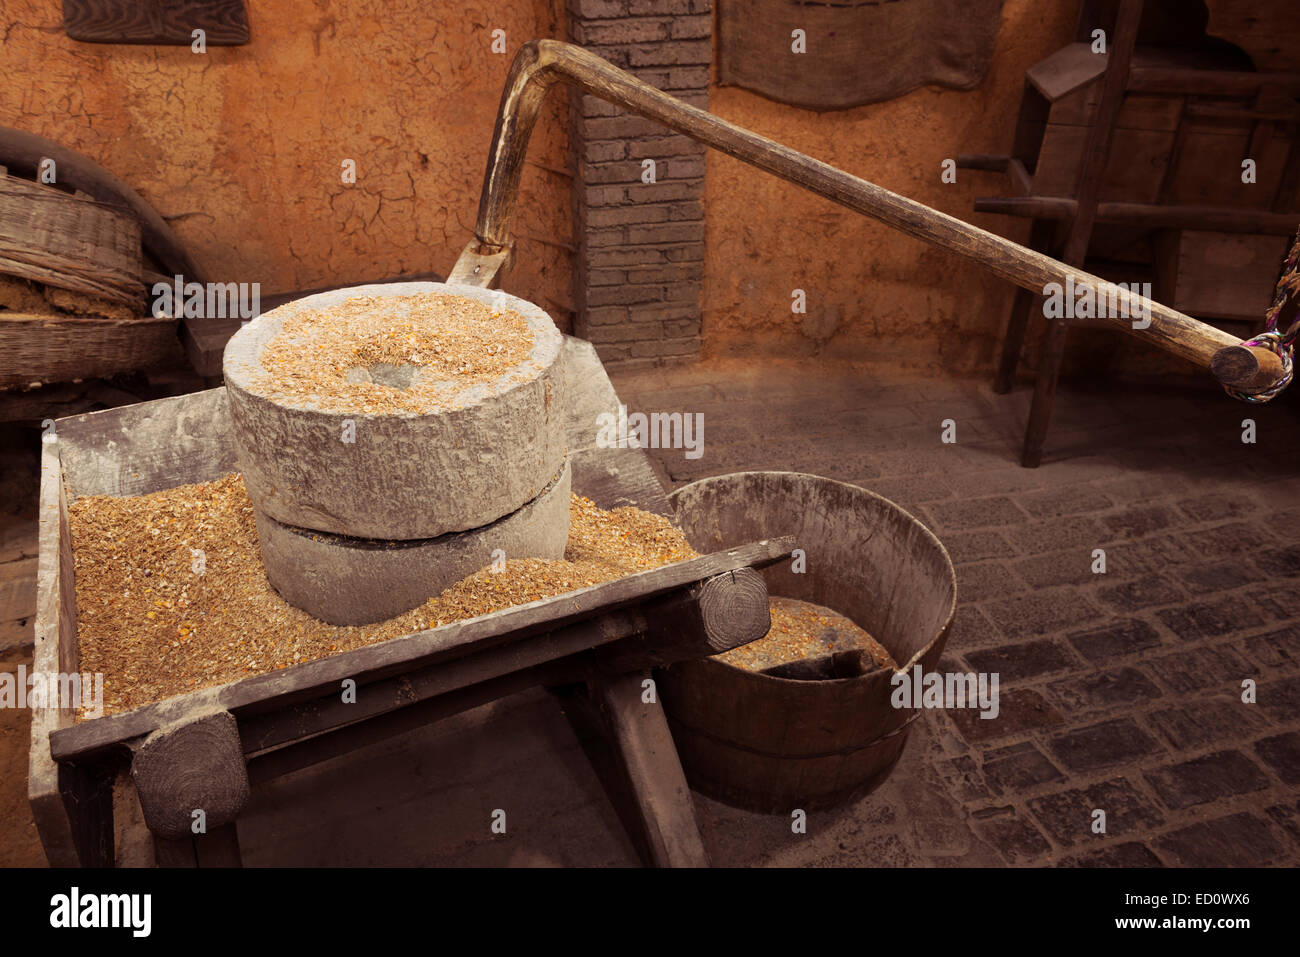 Gristmill ancient stone grain mill at a rural history museum in Zhangjiajie, Hunan, China - Stock Image